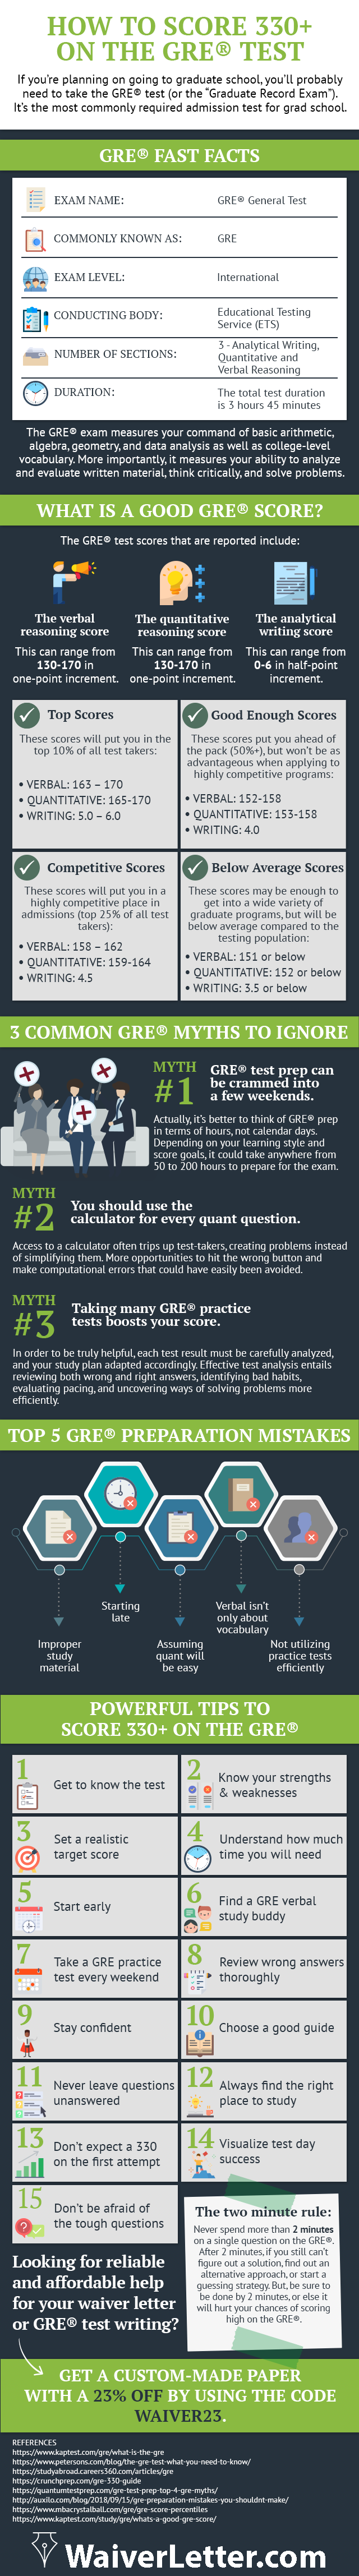 What to write in a GRE Public Health Letter of Waiver #infographic